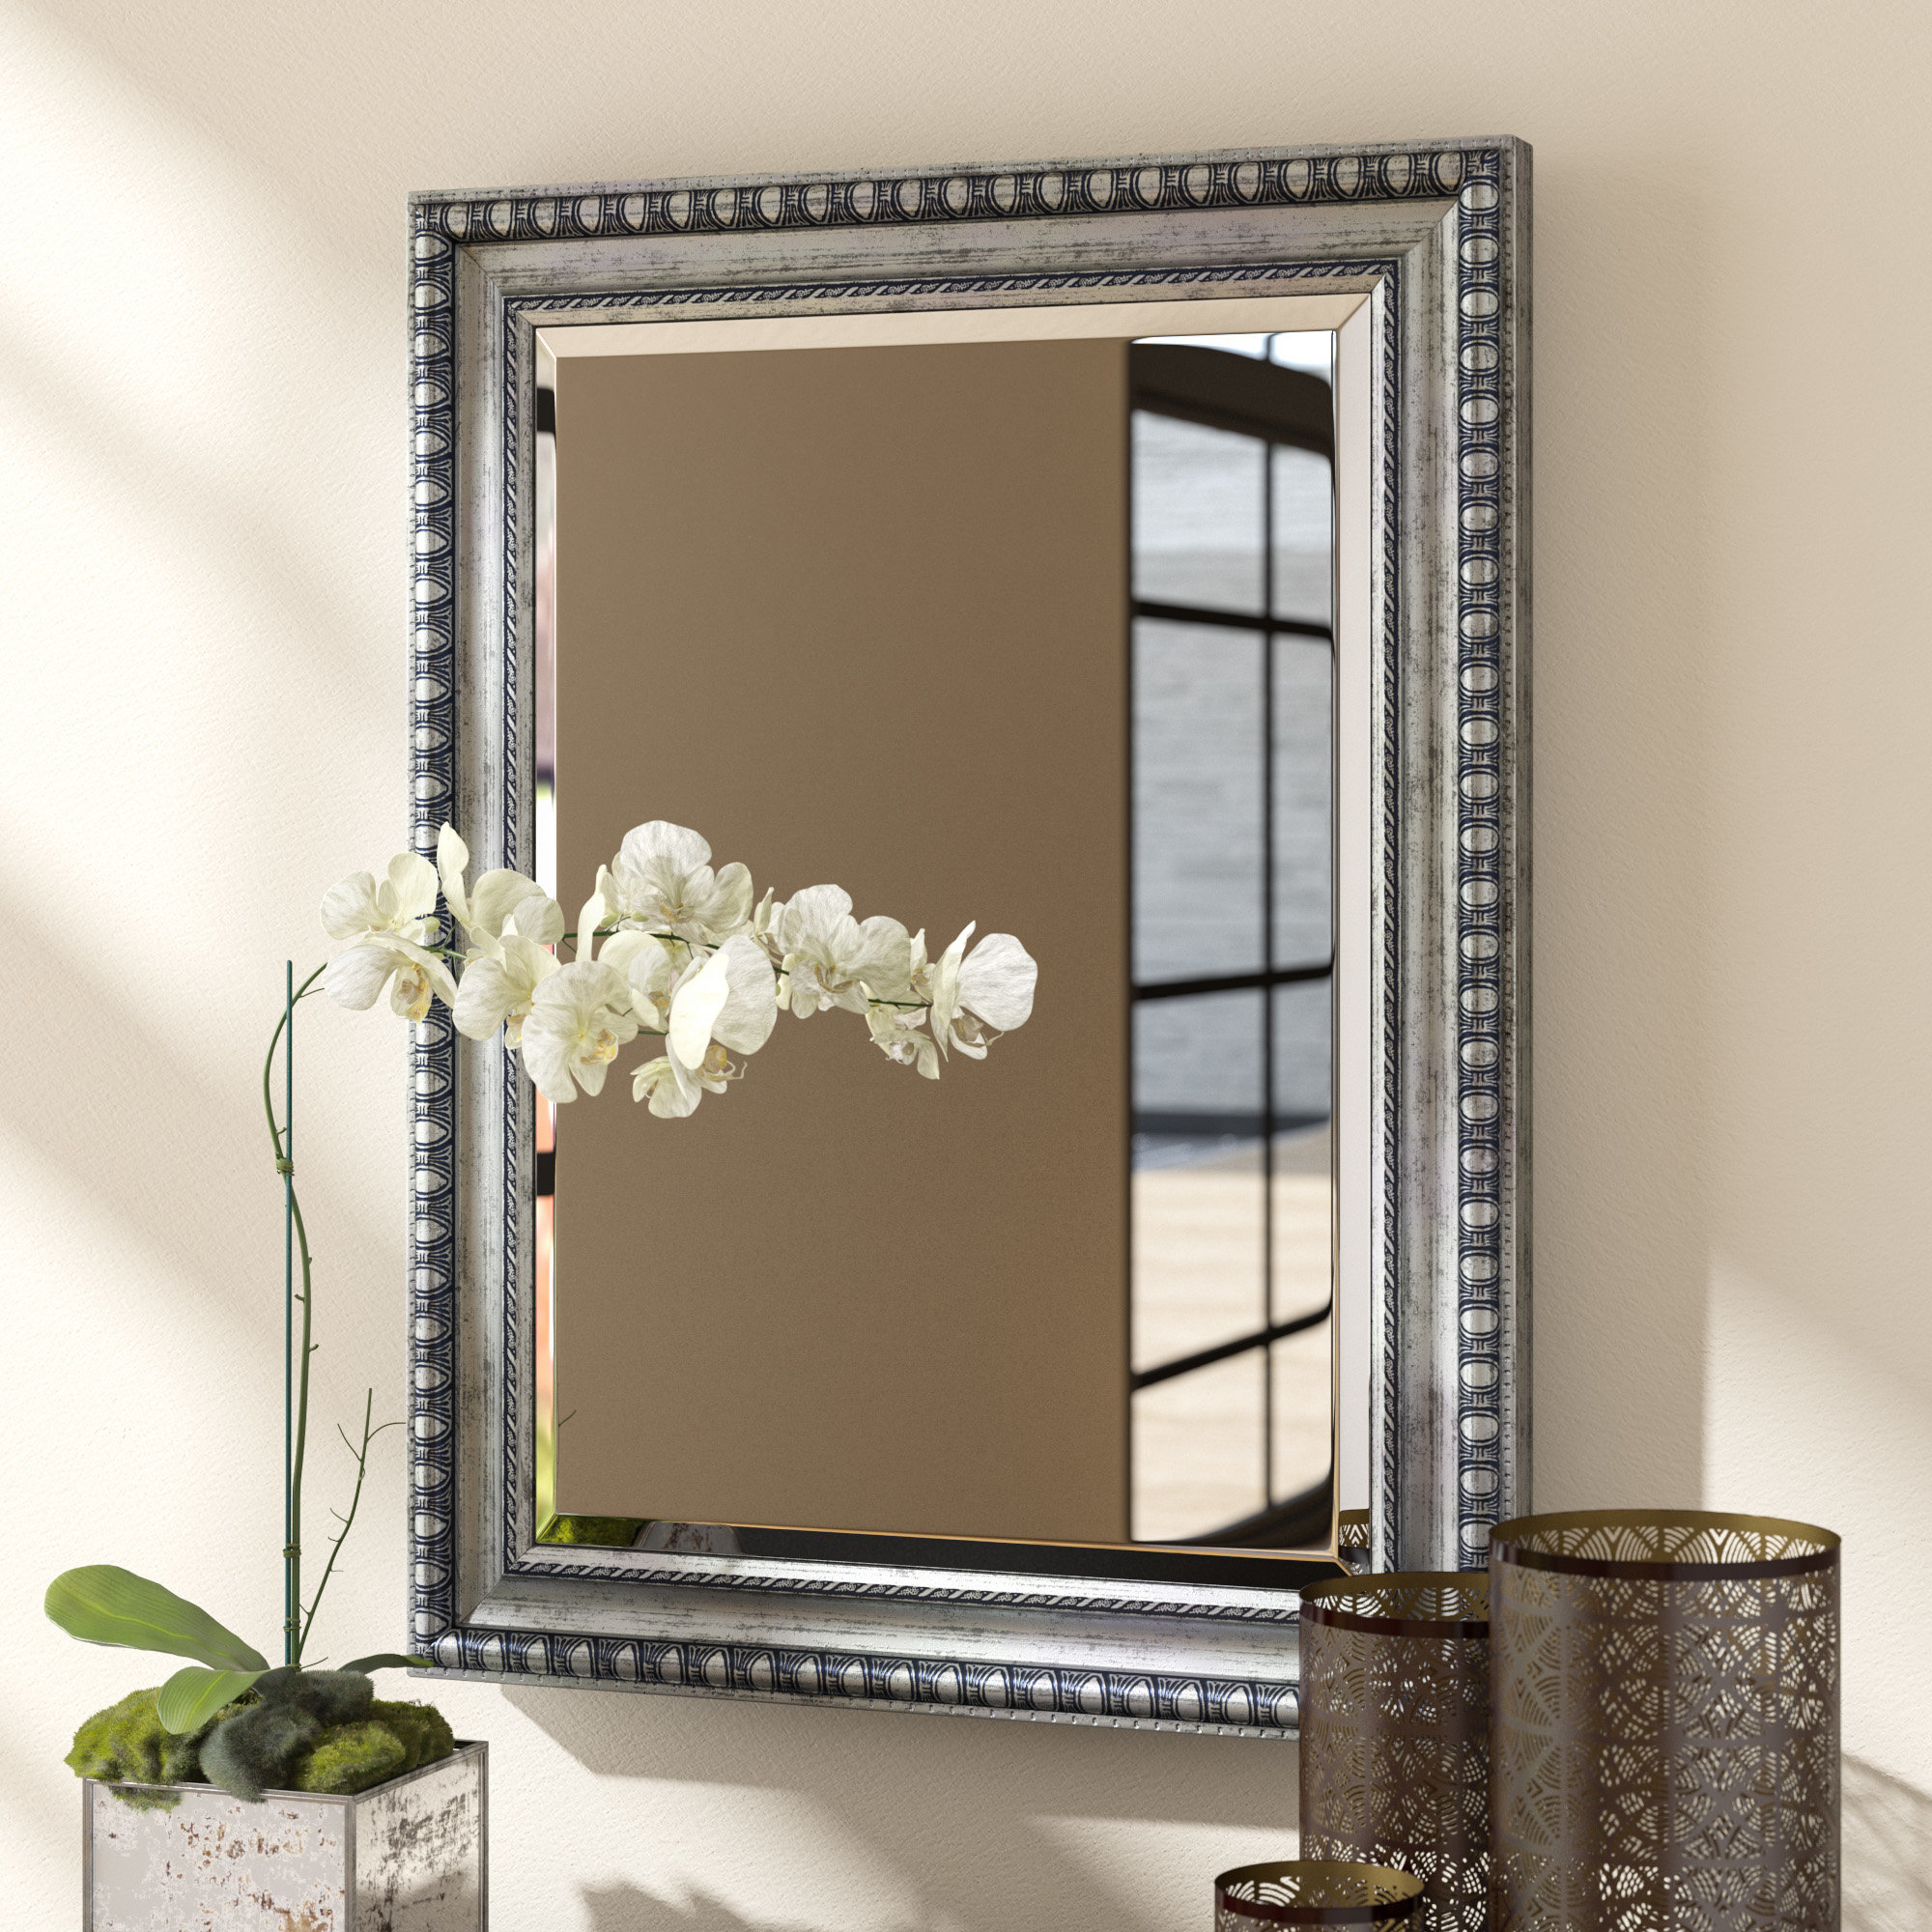 Eriq Framed Wall Mirror For Most Current Eriq Framed Wall Mirrors (Gallery 1 of 20)